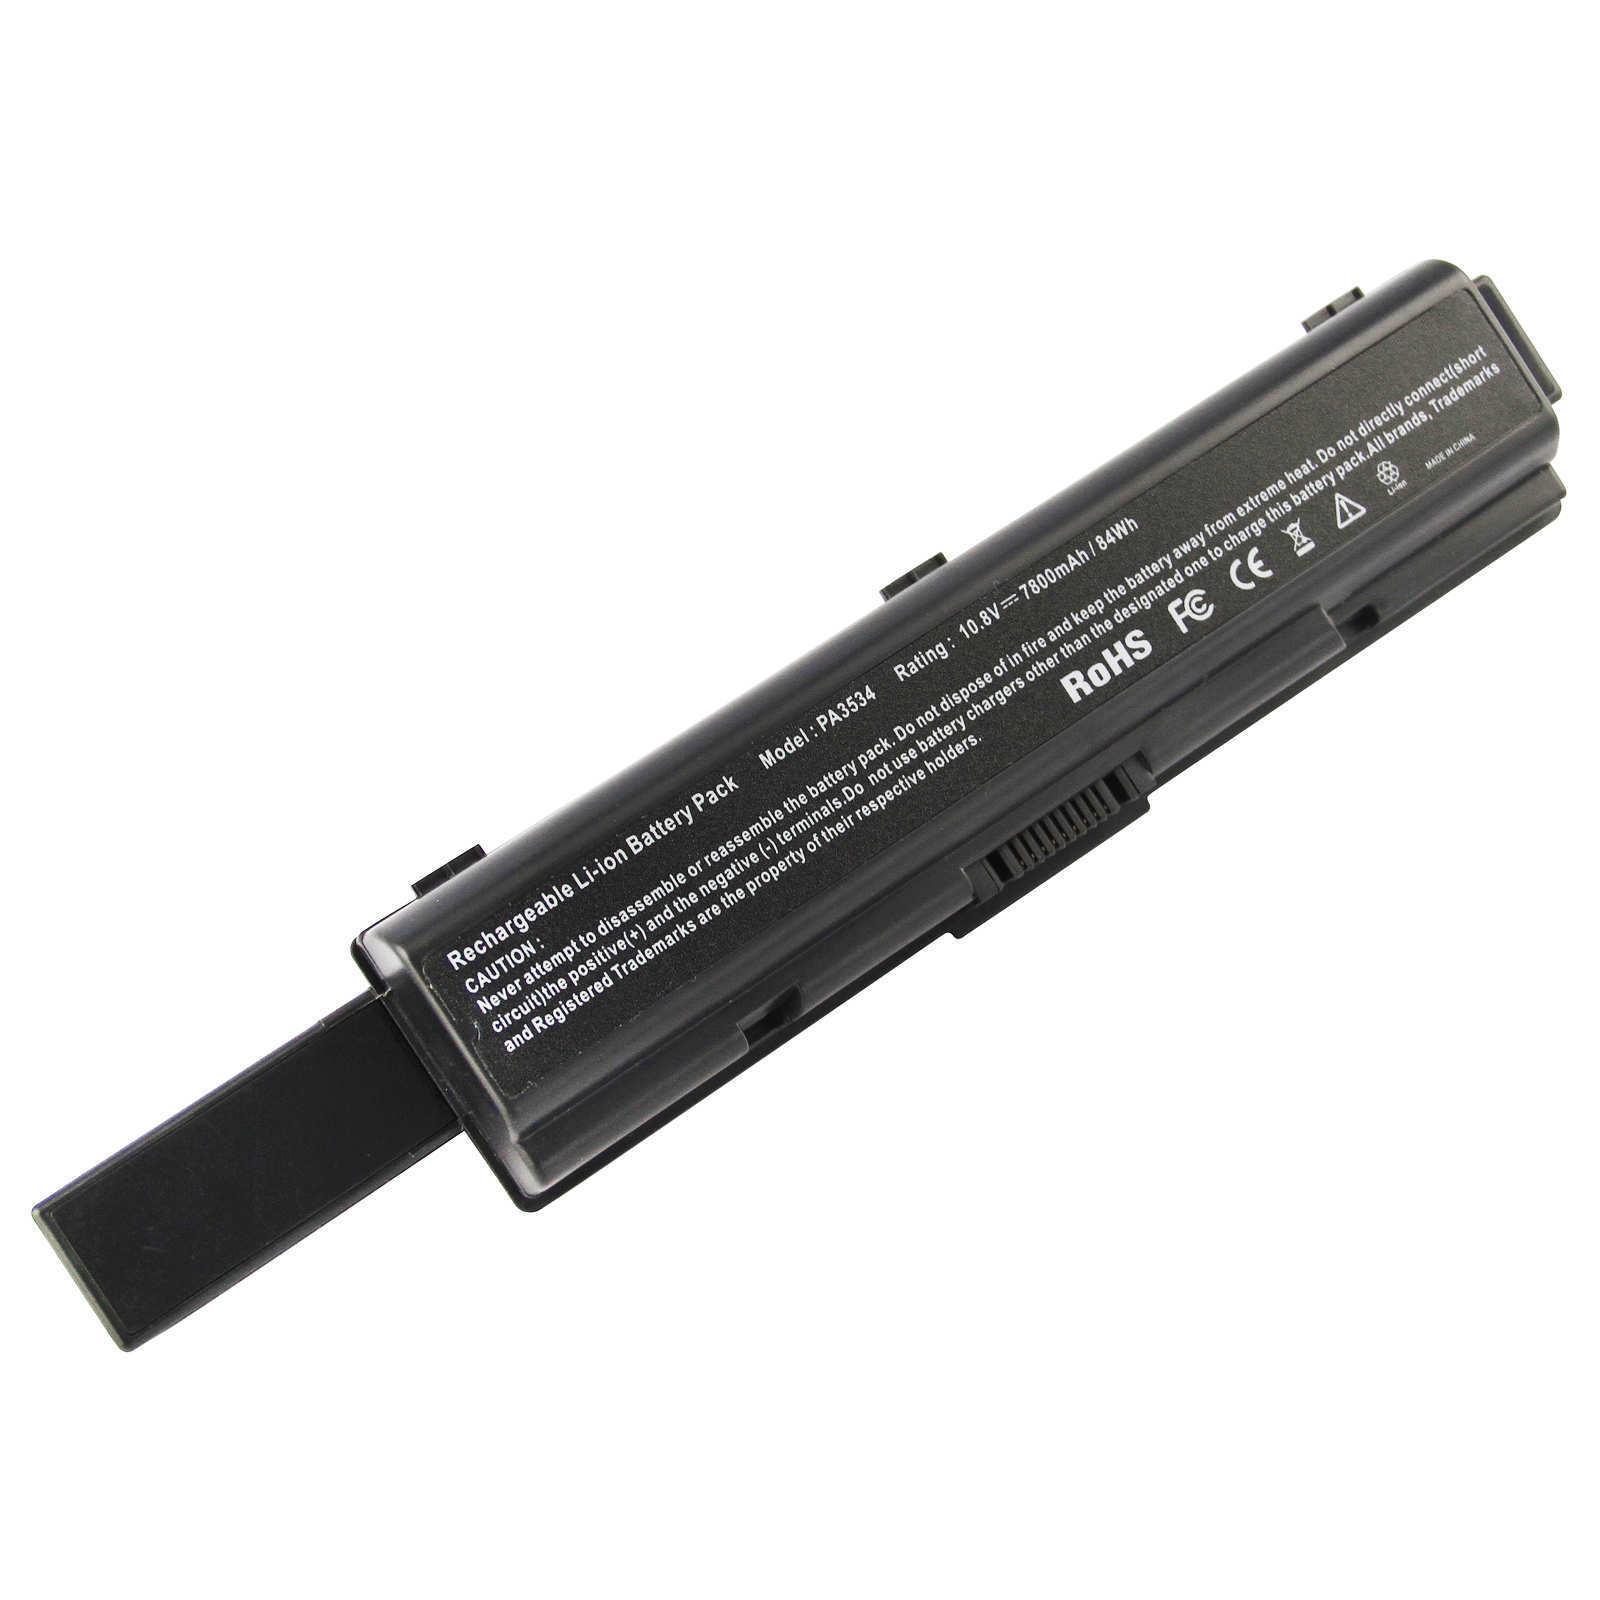 Replacement Toshiba Satellite A205 Battery